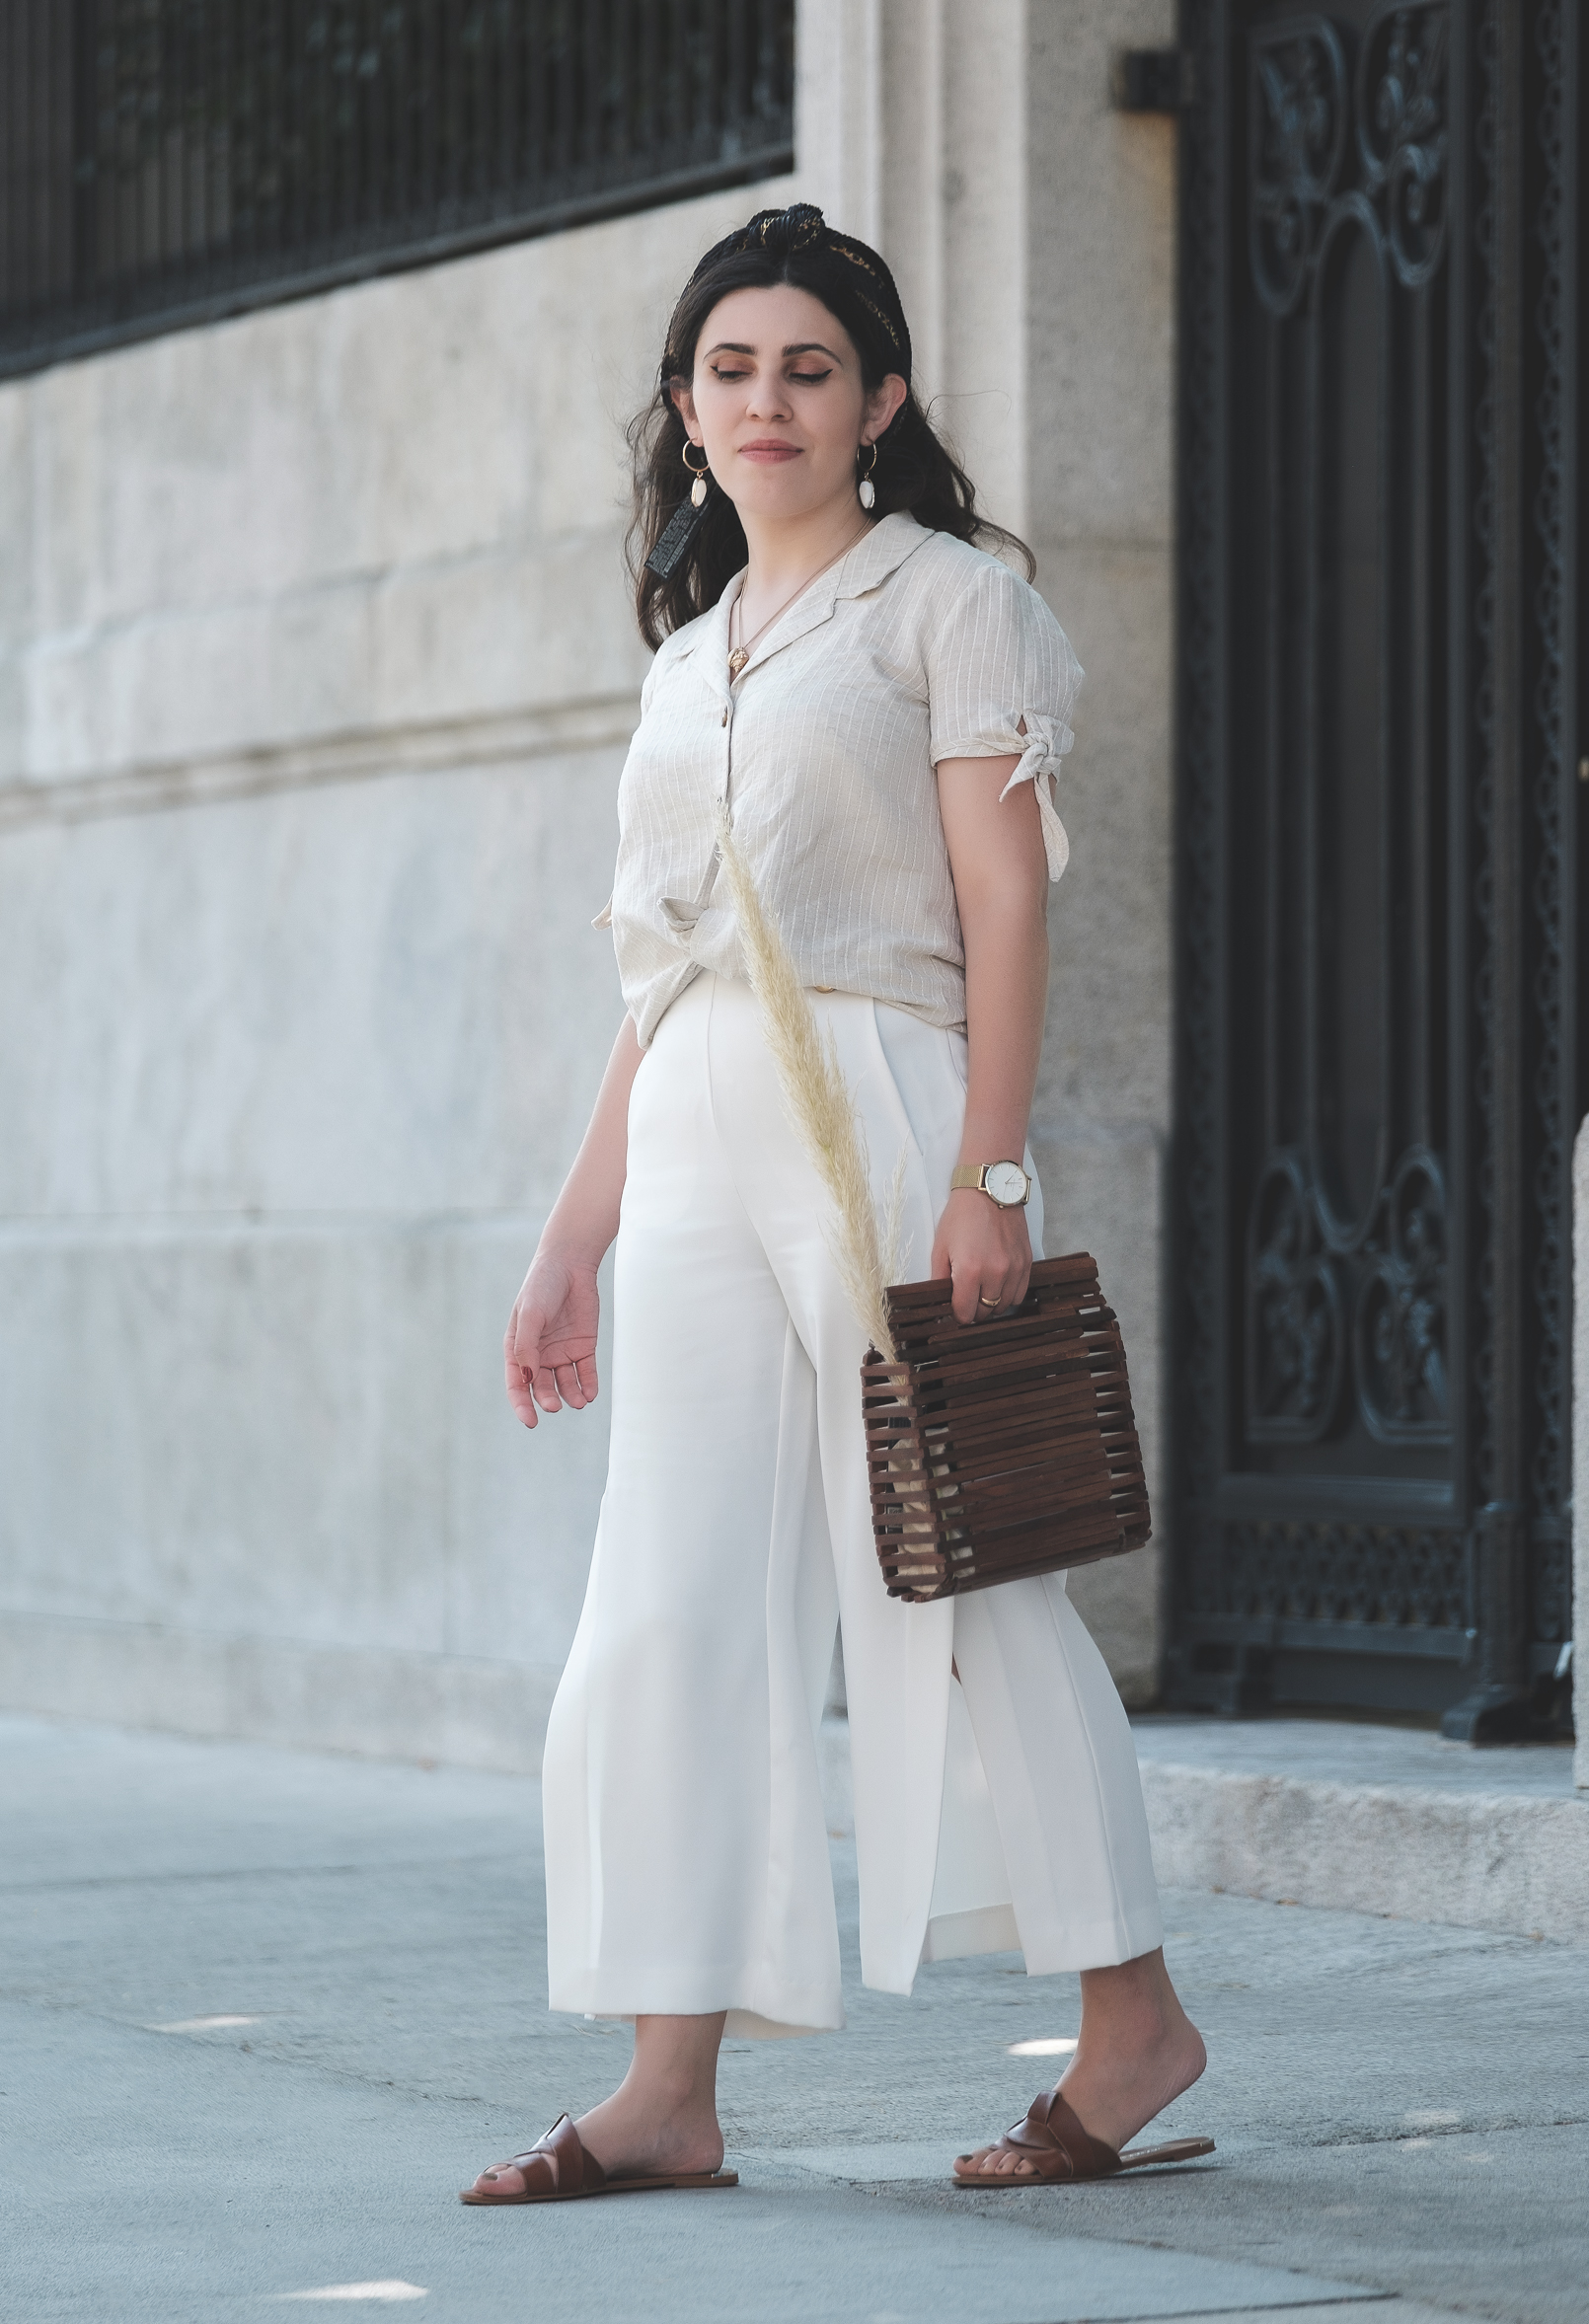 Le Fashionaire white culottes zara brown leather zara slides shell mango earrings wood zara bag chain pattern hair scarf 5203 EN white culottes zara brown leather zara slides shell mango earrings wood zara bag chain pattern hair scarf 5203 EN